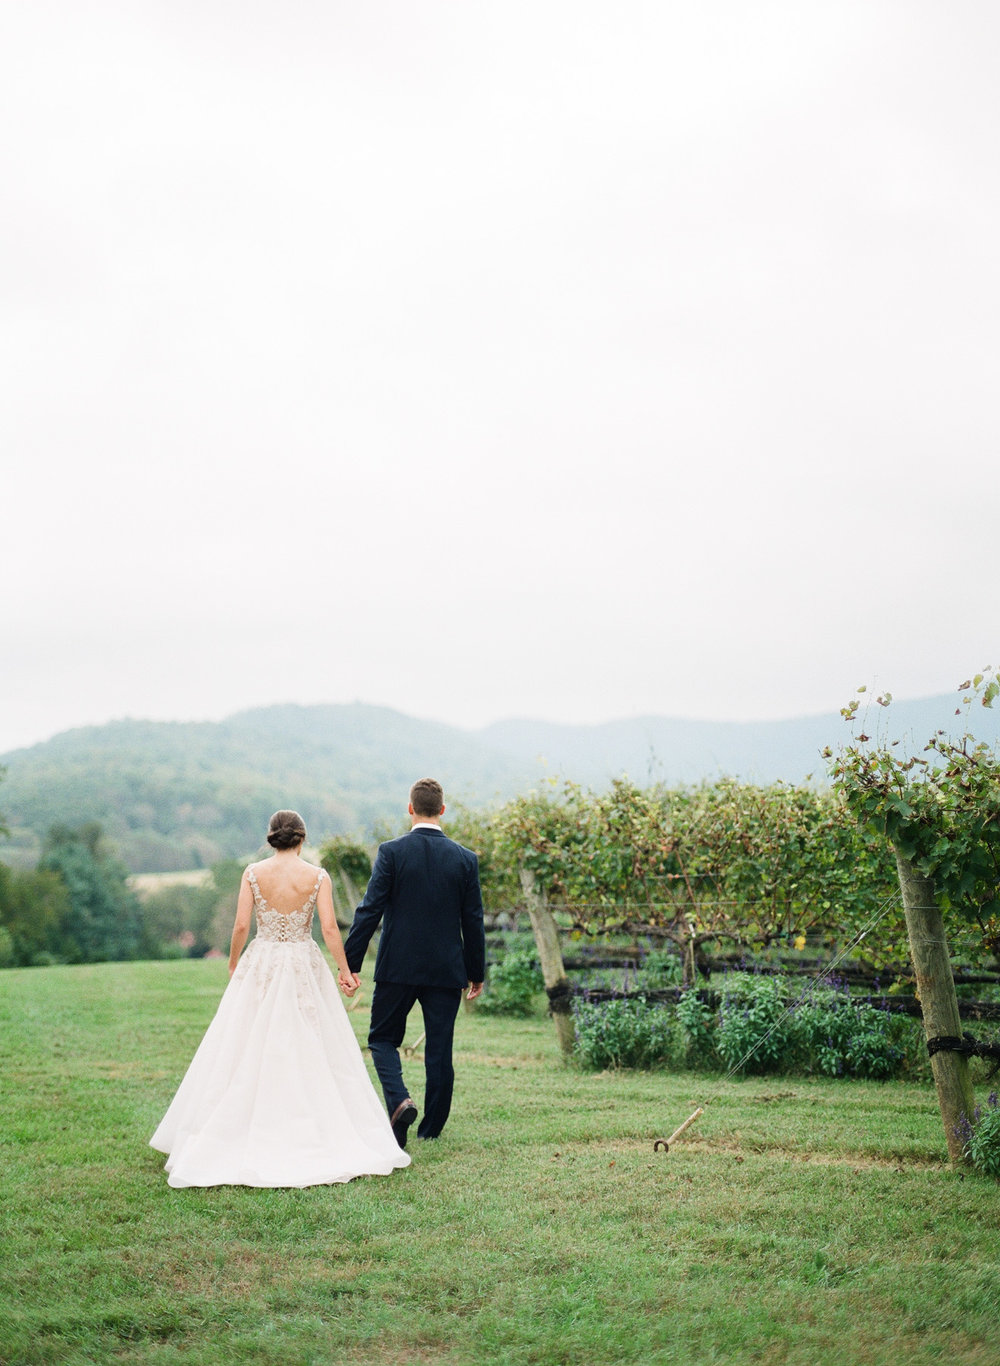 Pippin-Hill-Farm-and-Vinyards-Wedding-Film-Photography-18.jpg